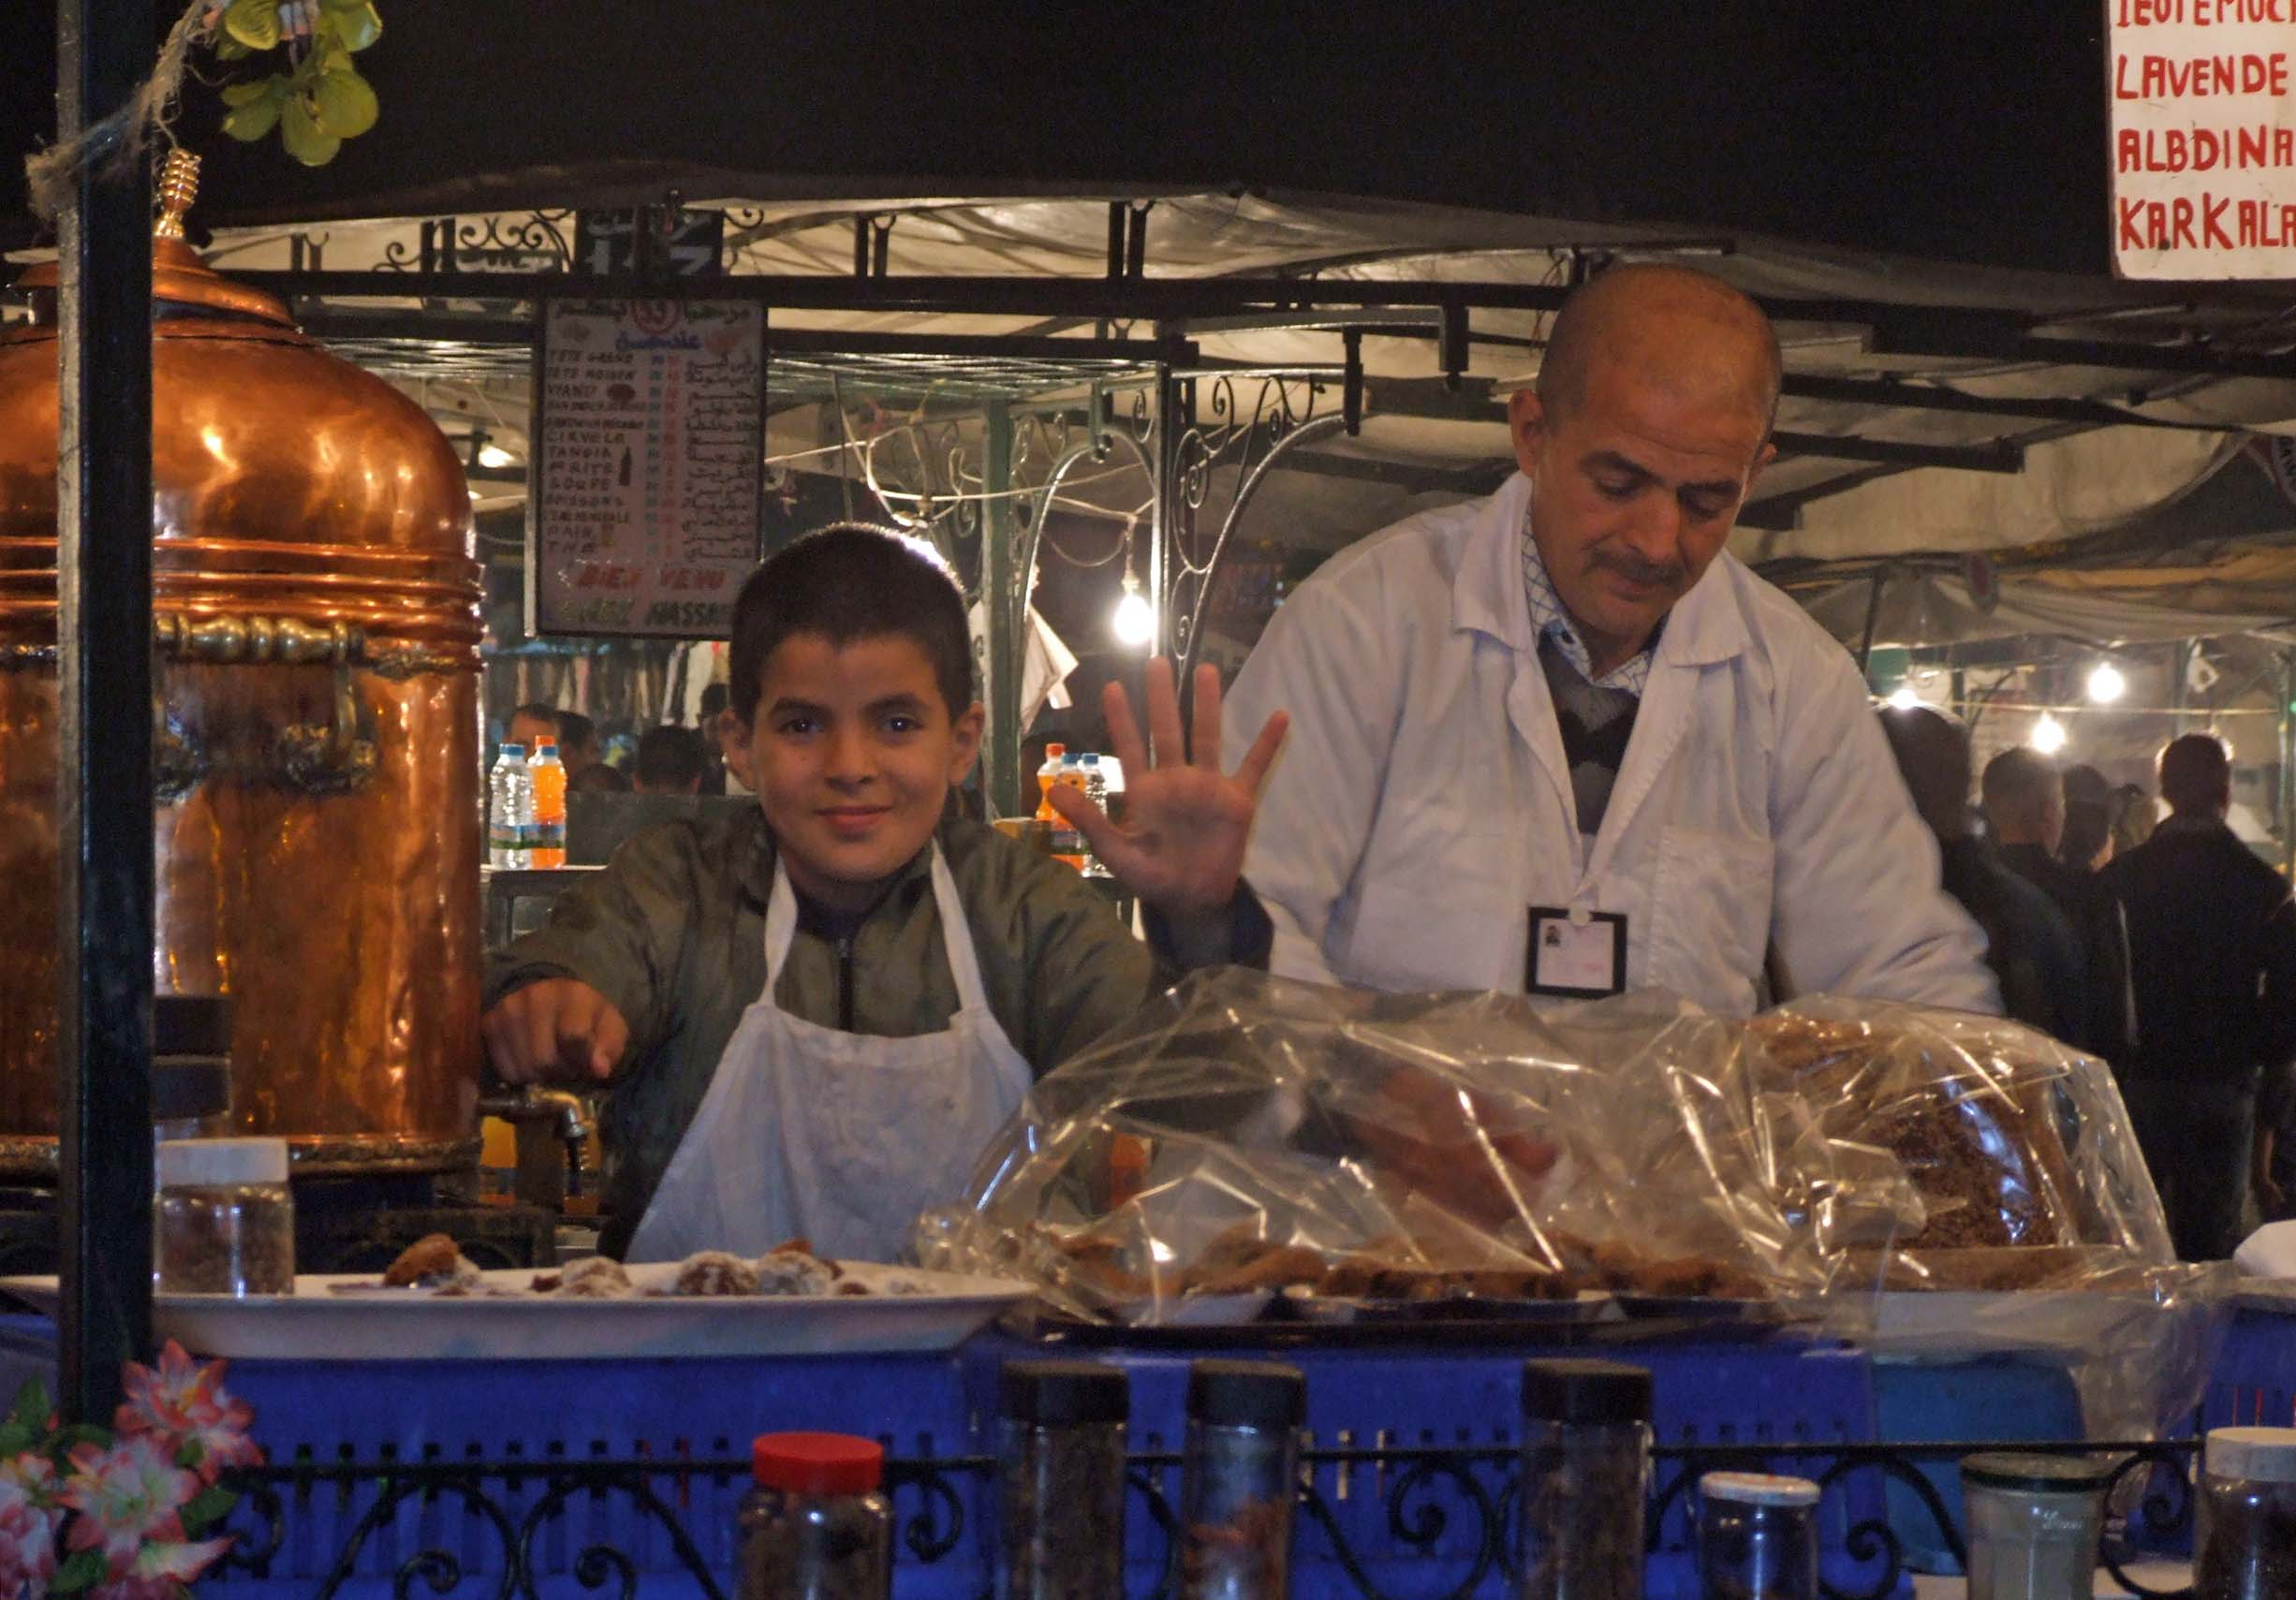 Young boy and man at a food stall